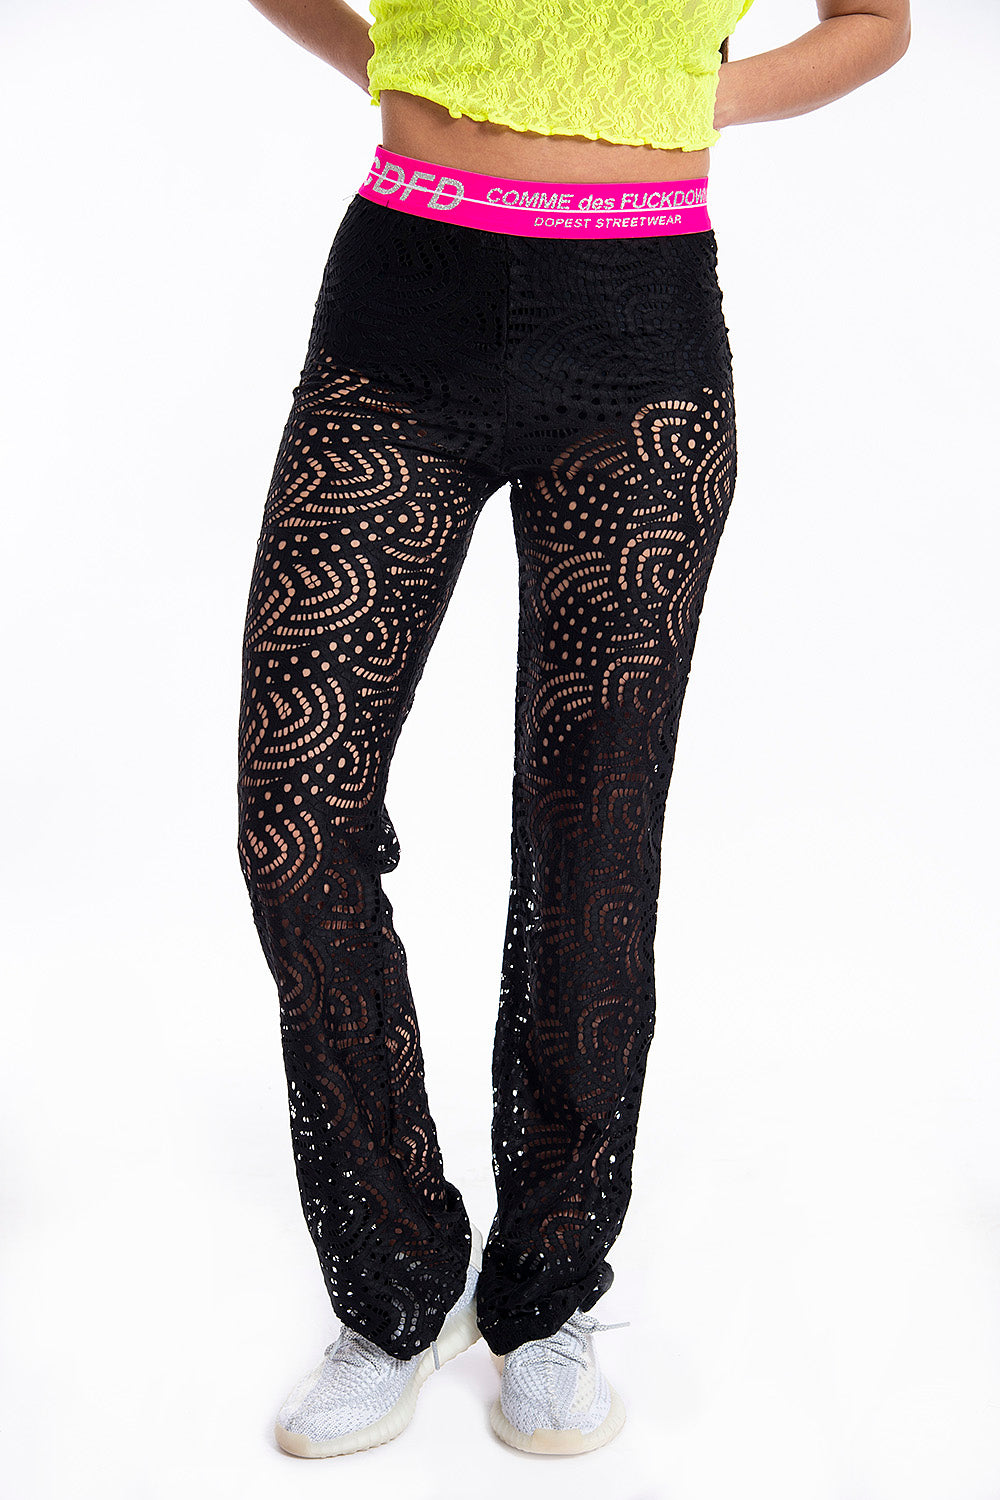 Comme des Fuckdown lace trousers in flare leg